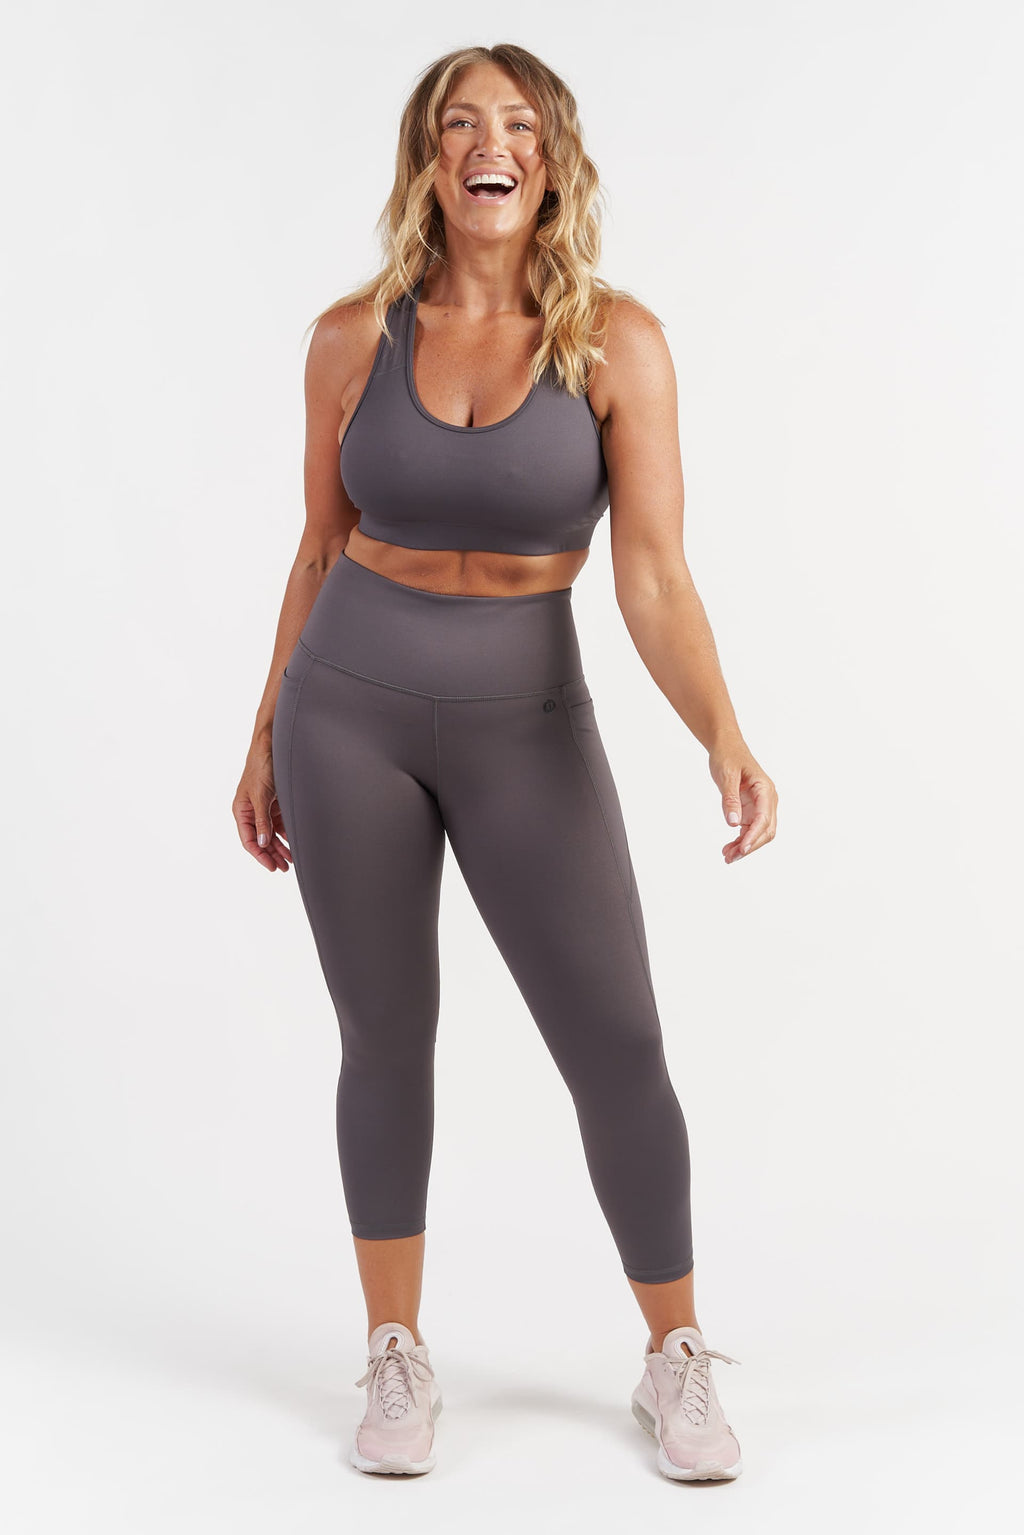 78length-gym-tights-grey-large-front